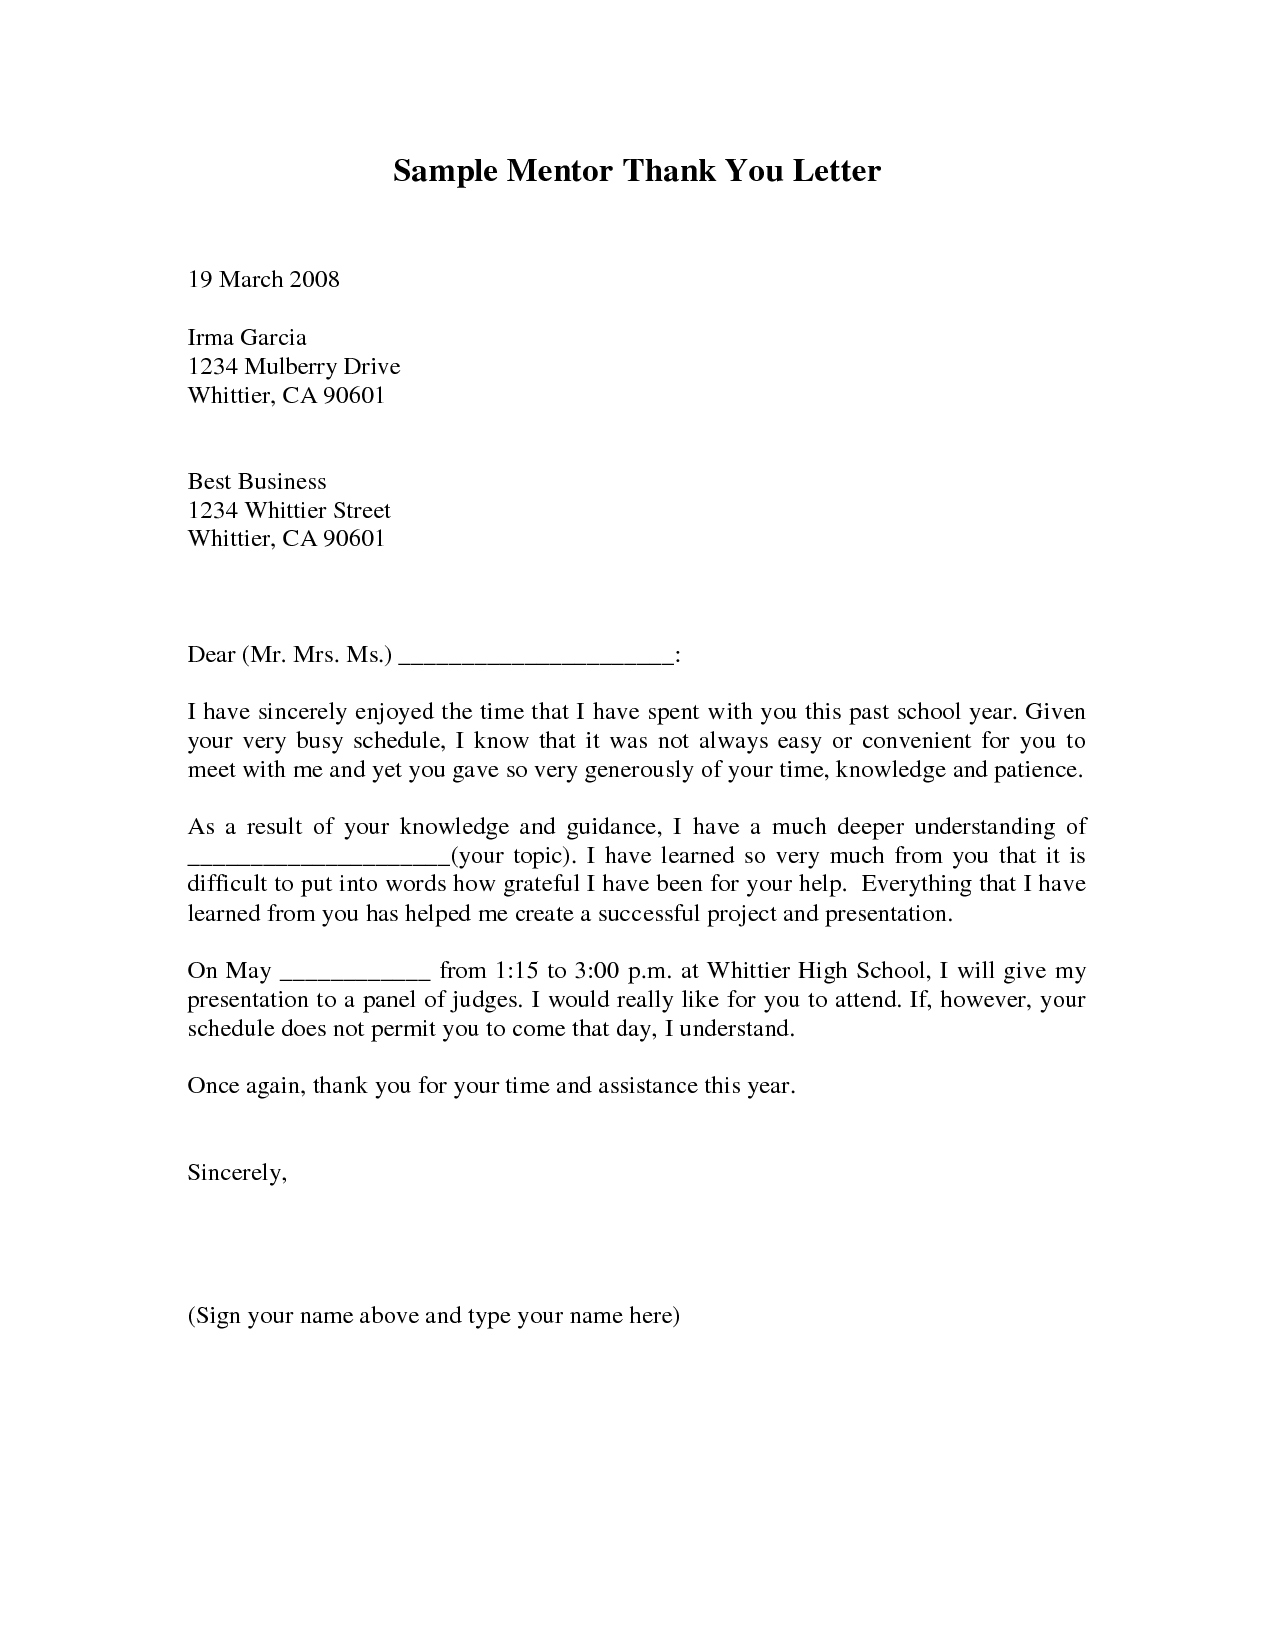 Job Application Reference Letter Template For College University